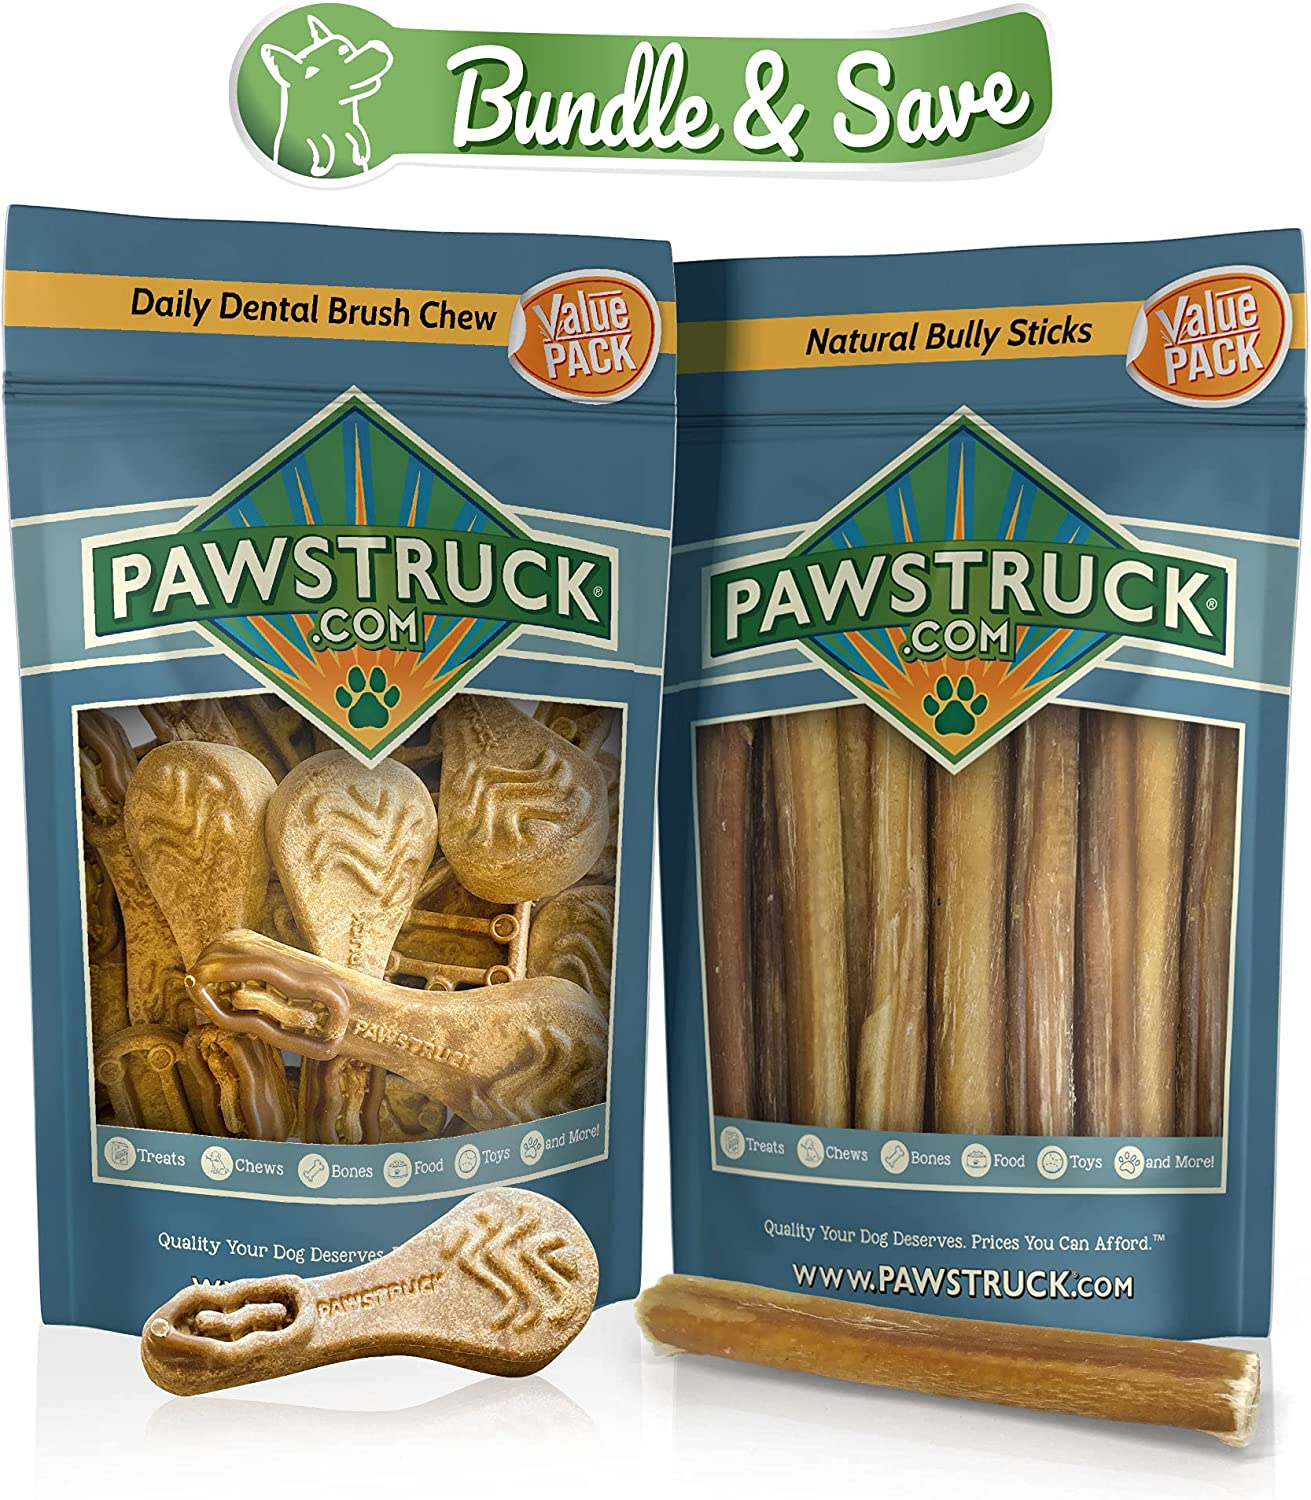 Natural Daily Dental Chews Bully Bundle Dogs Sticks 15-Pa Manufacturer regenerated product Outstanding for